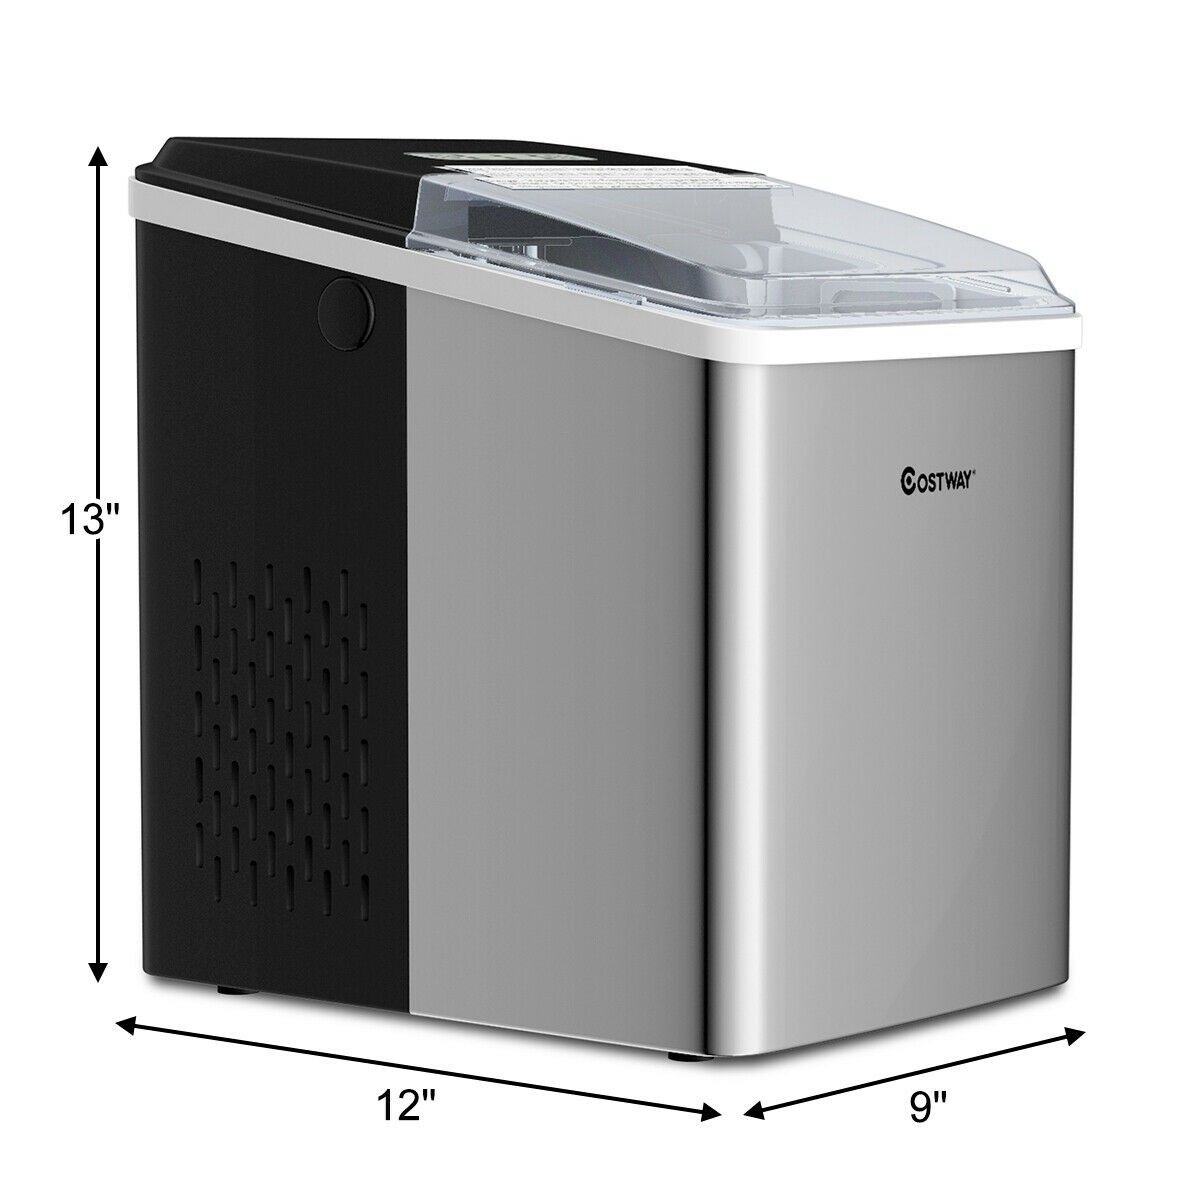 26 Lbs 24 H Self Clean Stainless Steel Ice Maker Cleaning Daily